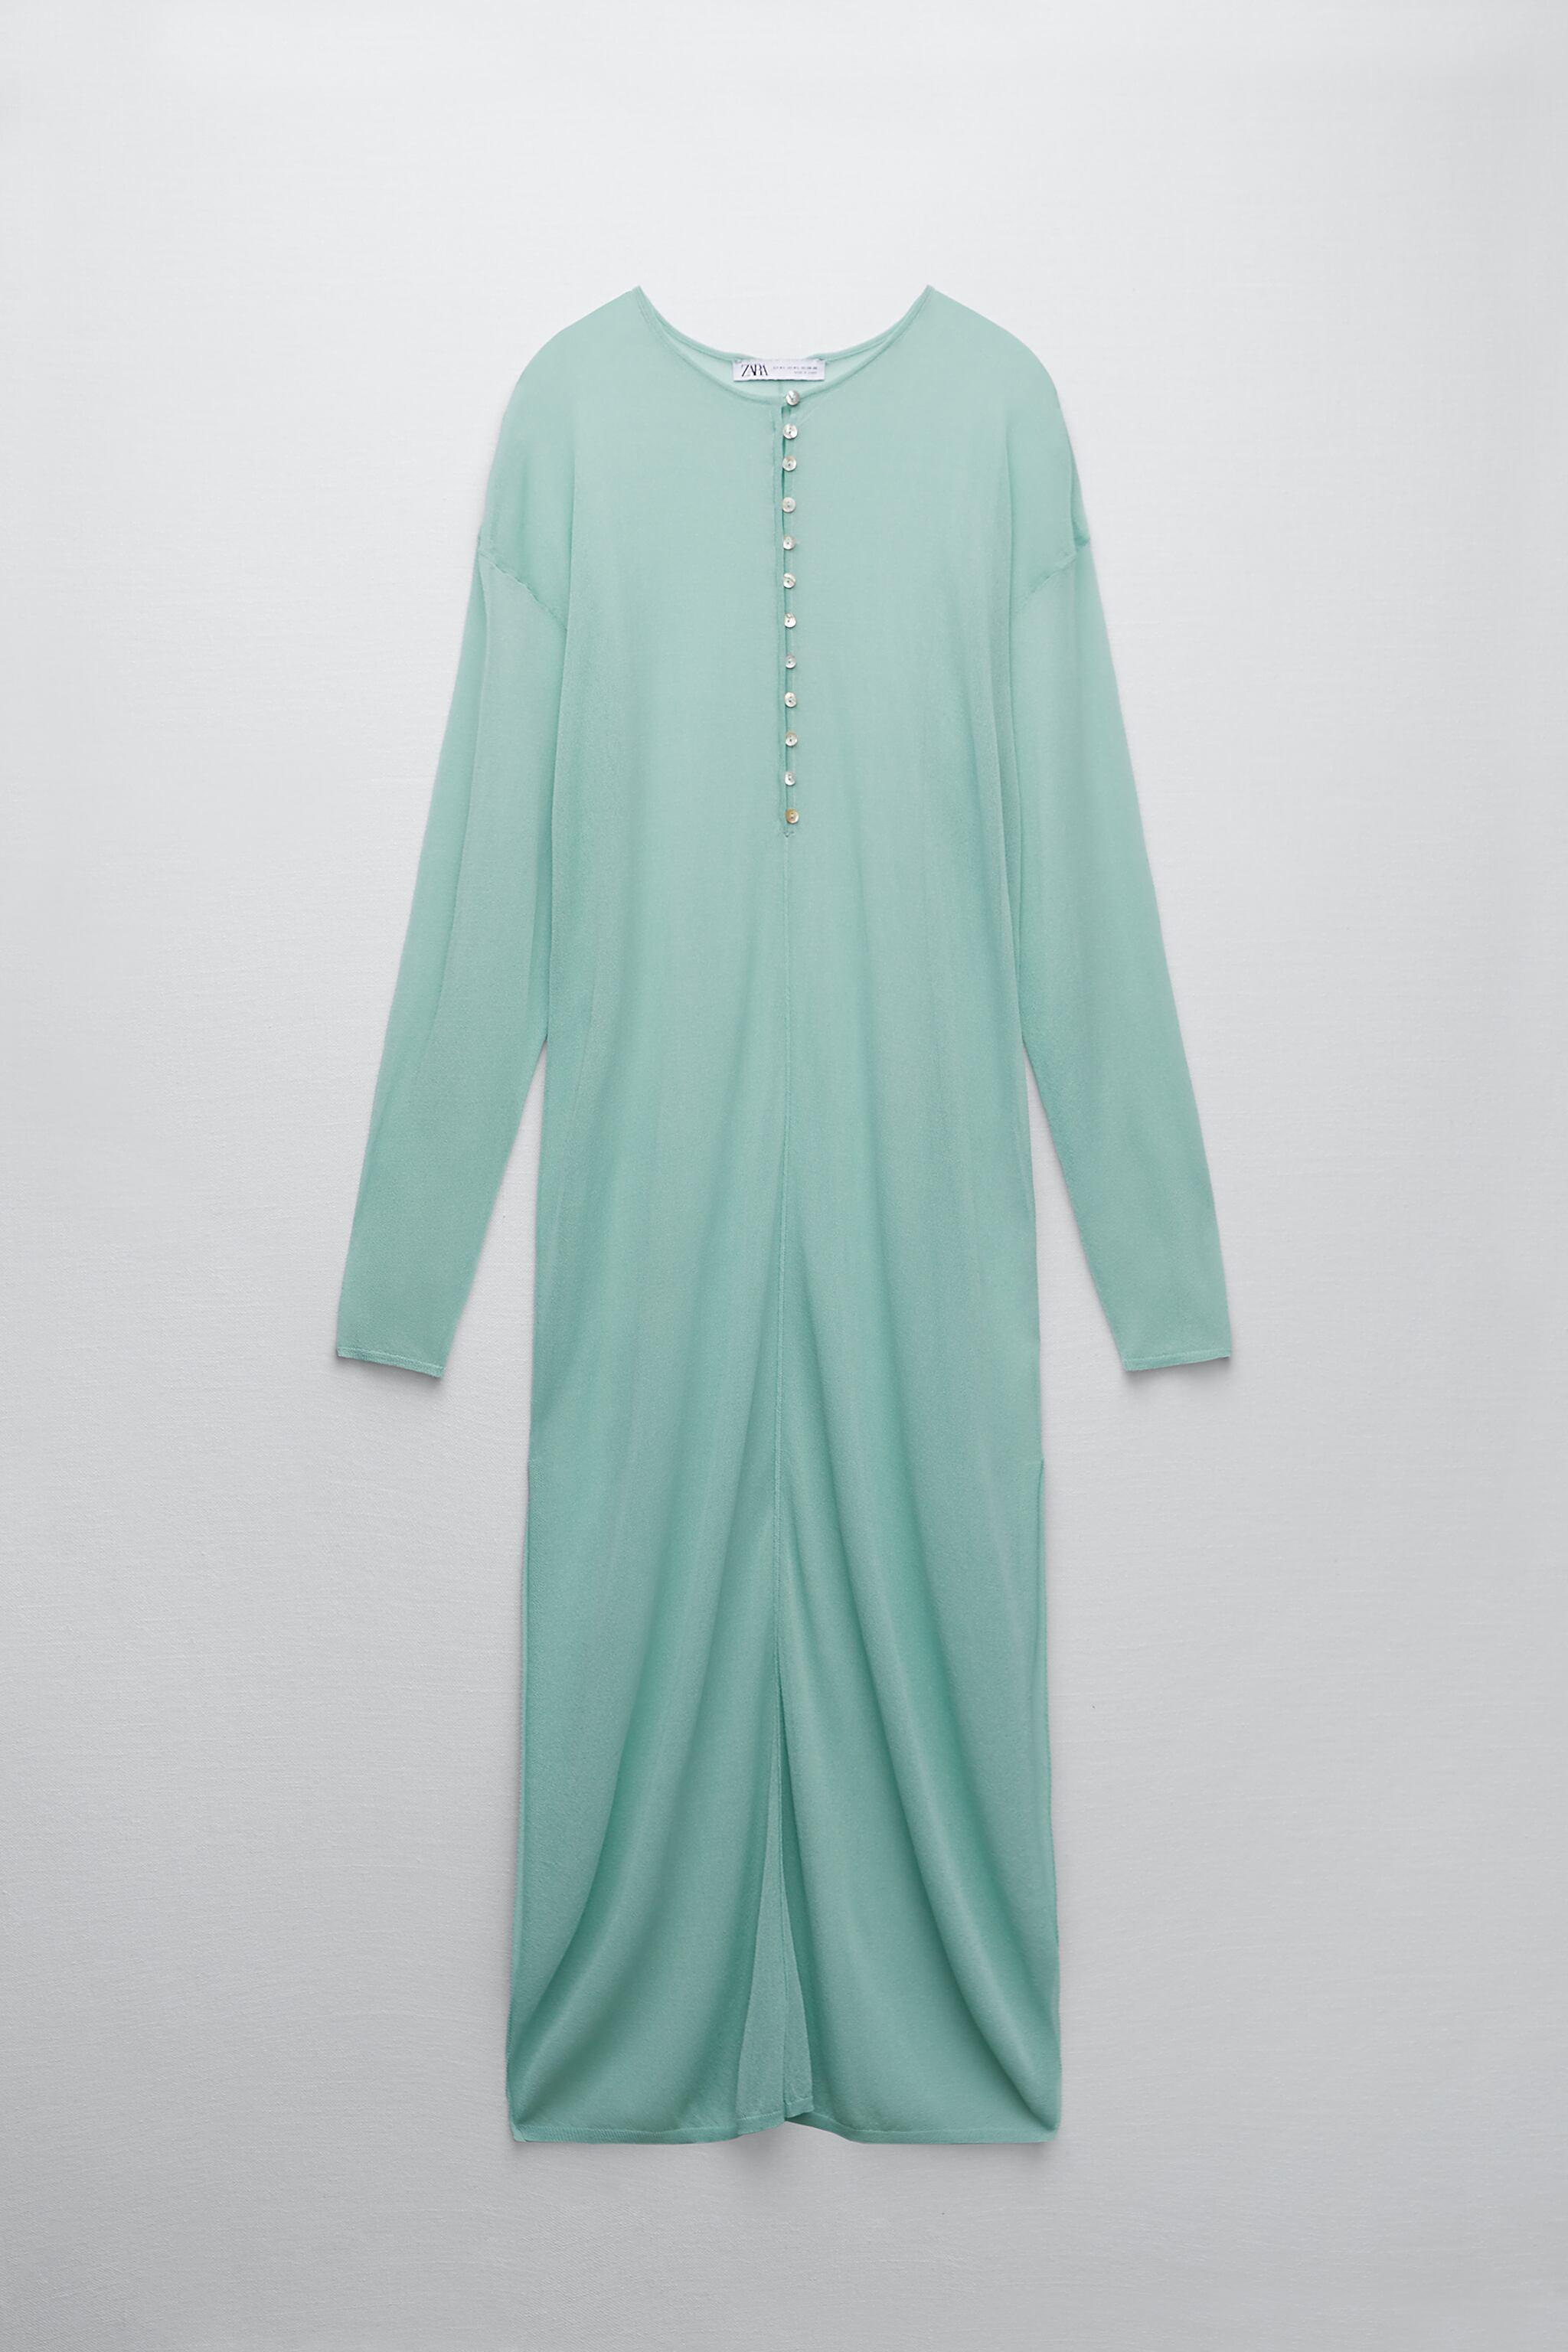 SEMI-SHEER KNIT TUNIC LIMITED EDITION 6